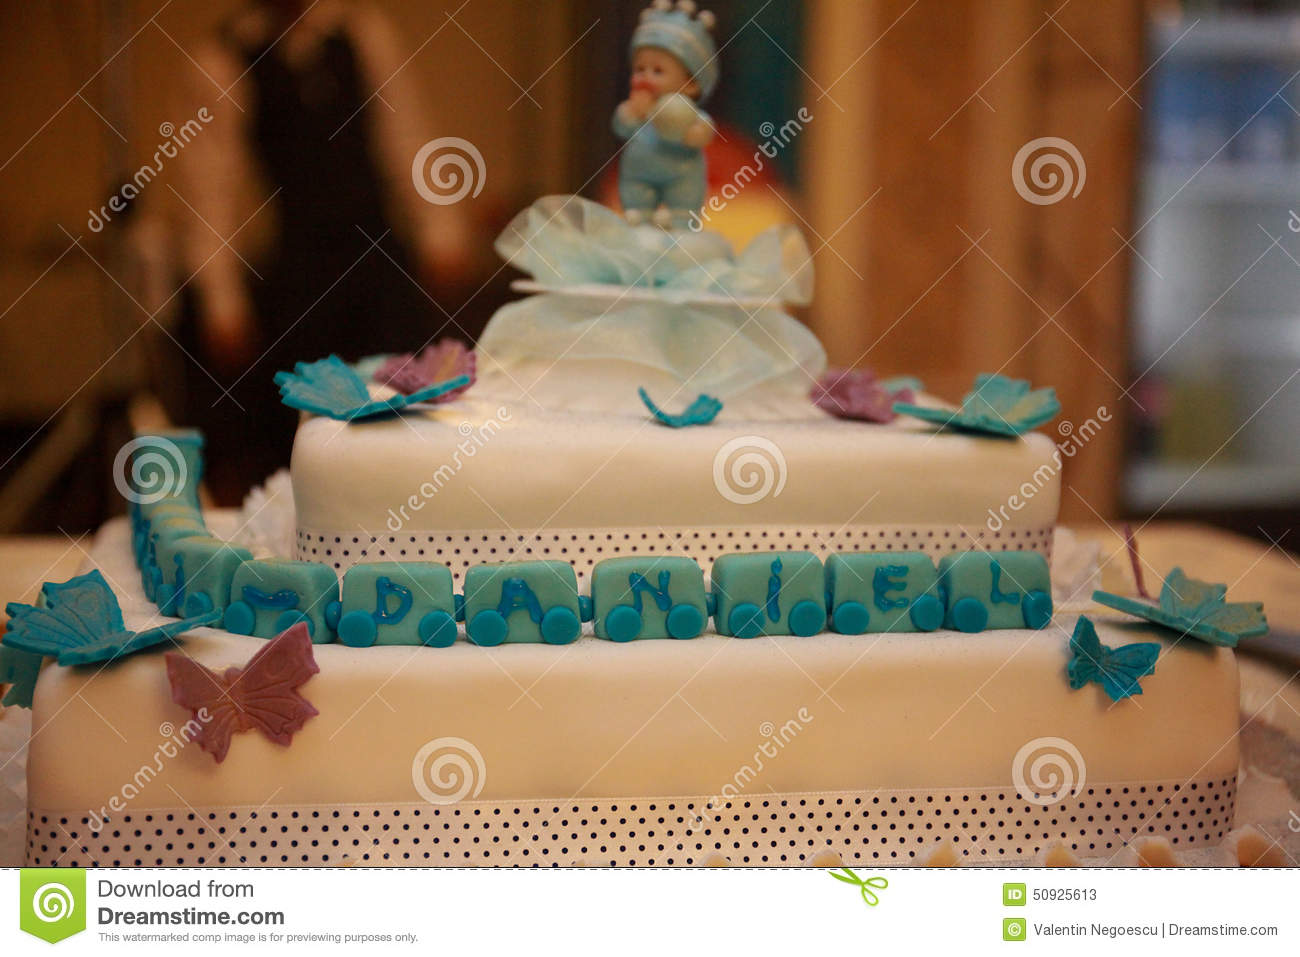 Daniel baby boy cake for new born celebrations stock photo for Baby footprints cake decoration